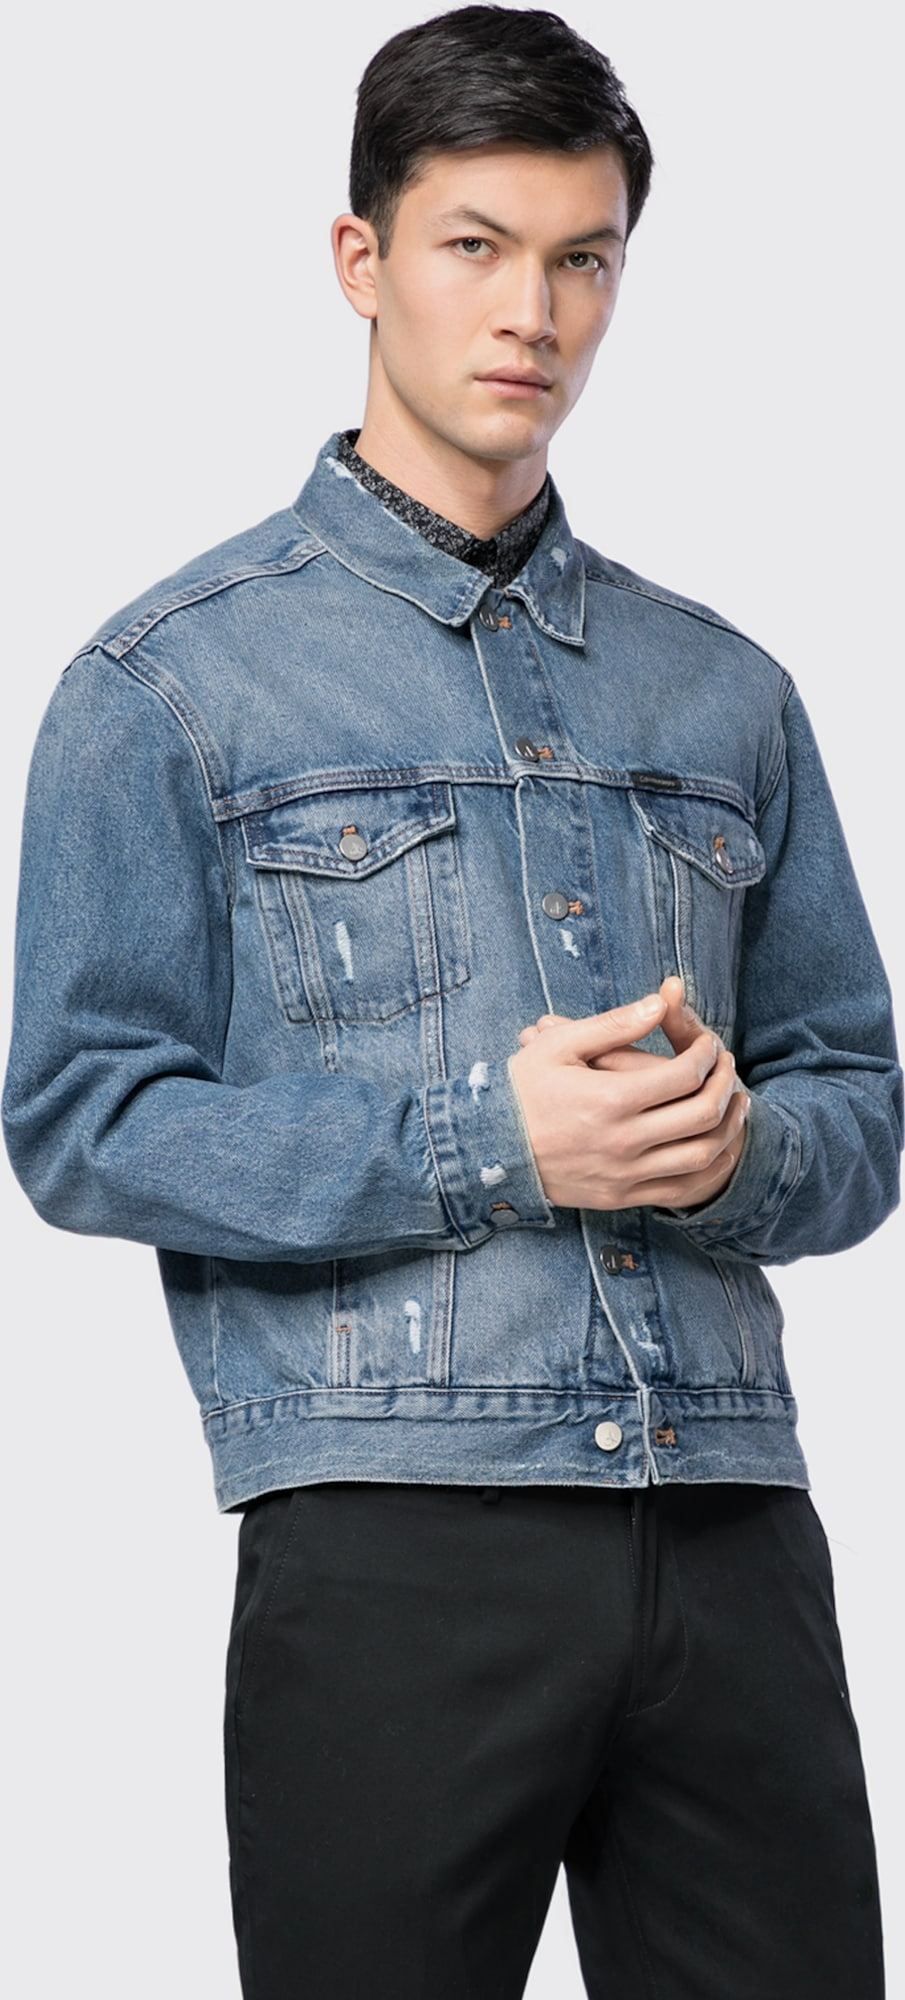 calvin klein jeans jeansjacke 39 classic trucker vintage a rgd 39 in blau about you. Black Bedroom Furniture Sets. Home Design Ideas